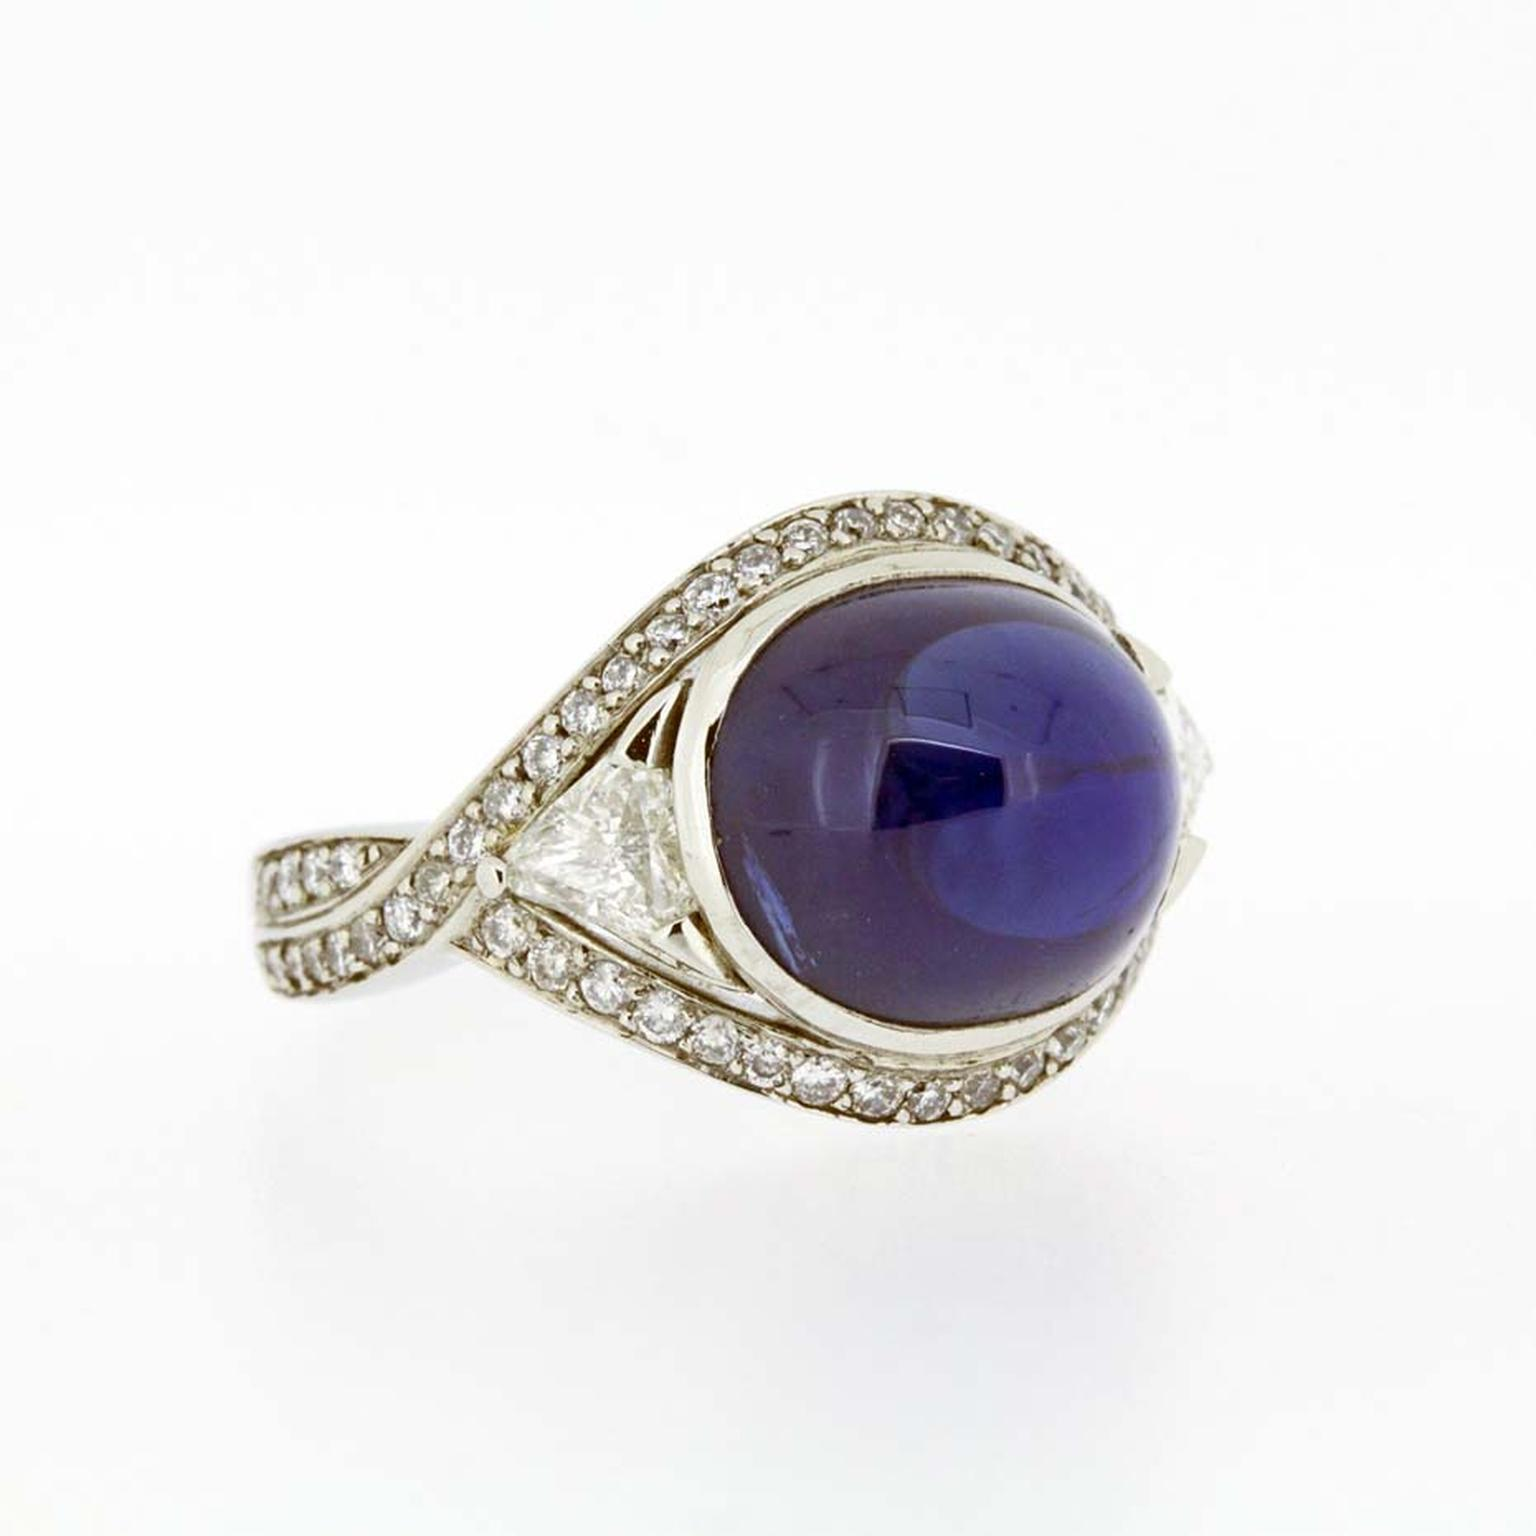 The cabochon gem in the sapphire ring by Brighton-based Baroque jewellery is a stylish alternative to a more traditional-cut stone.